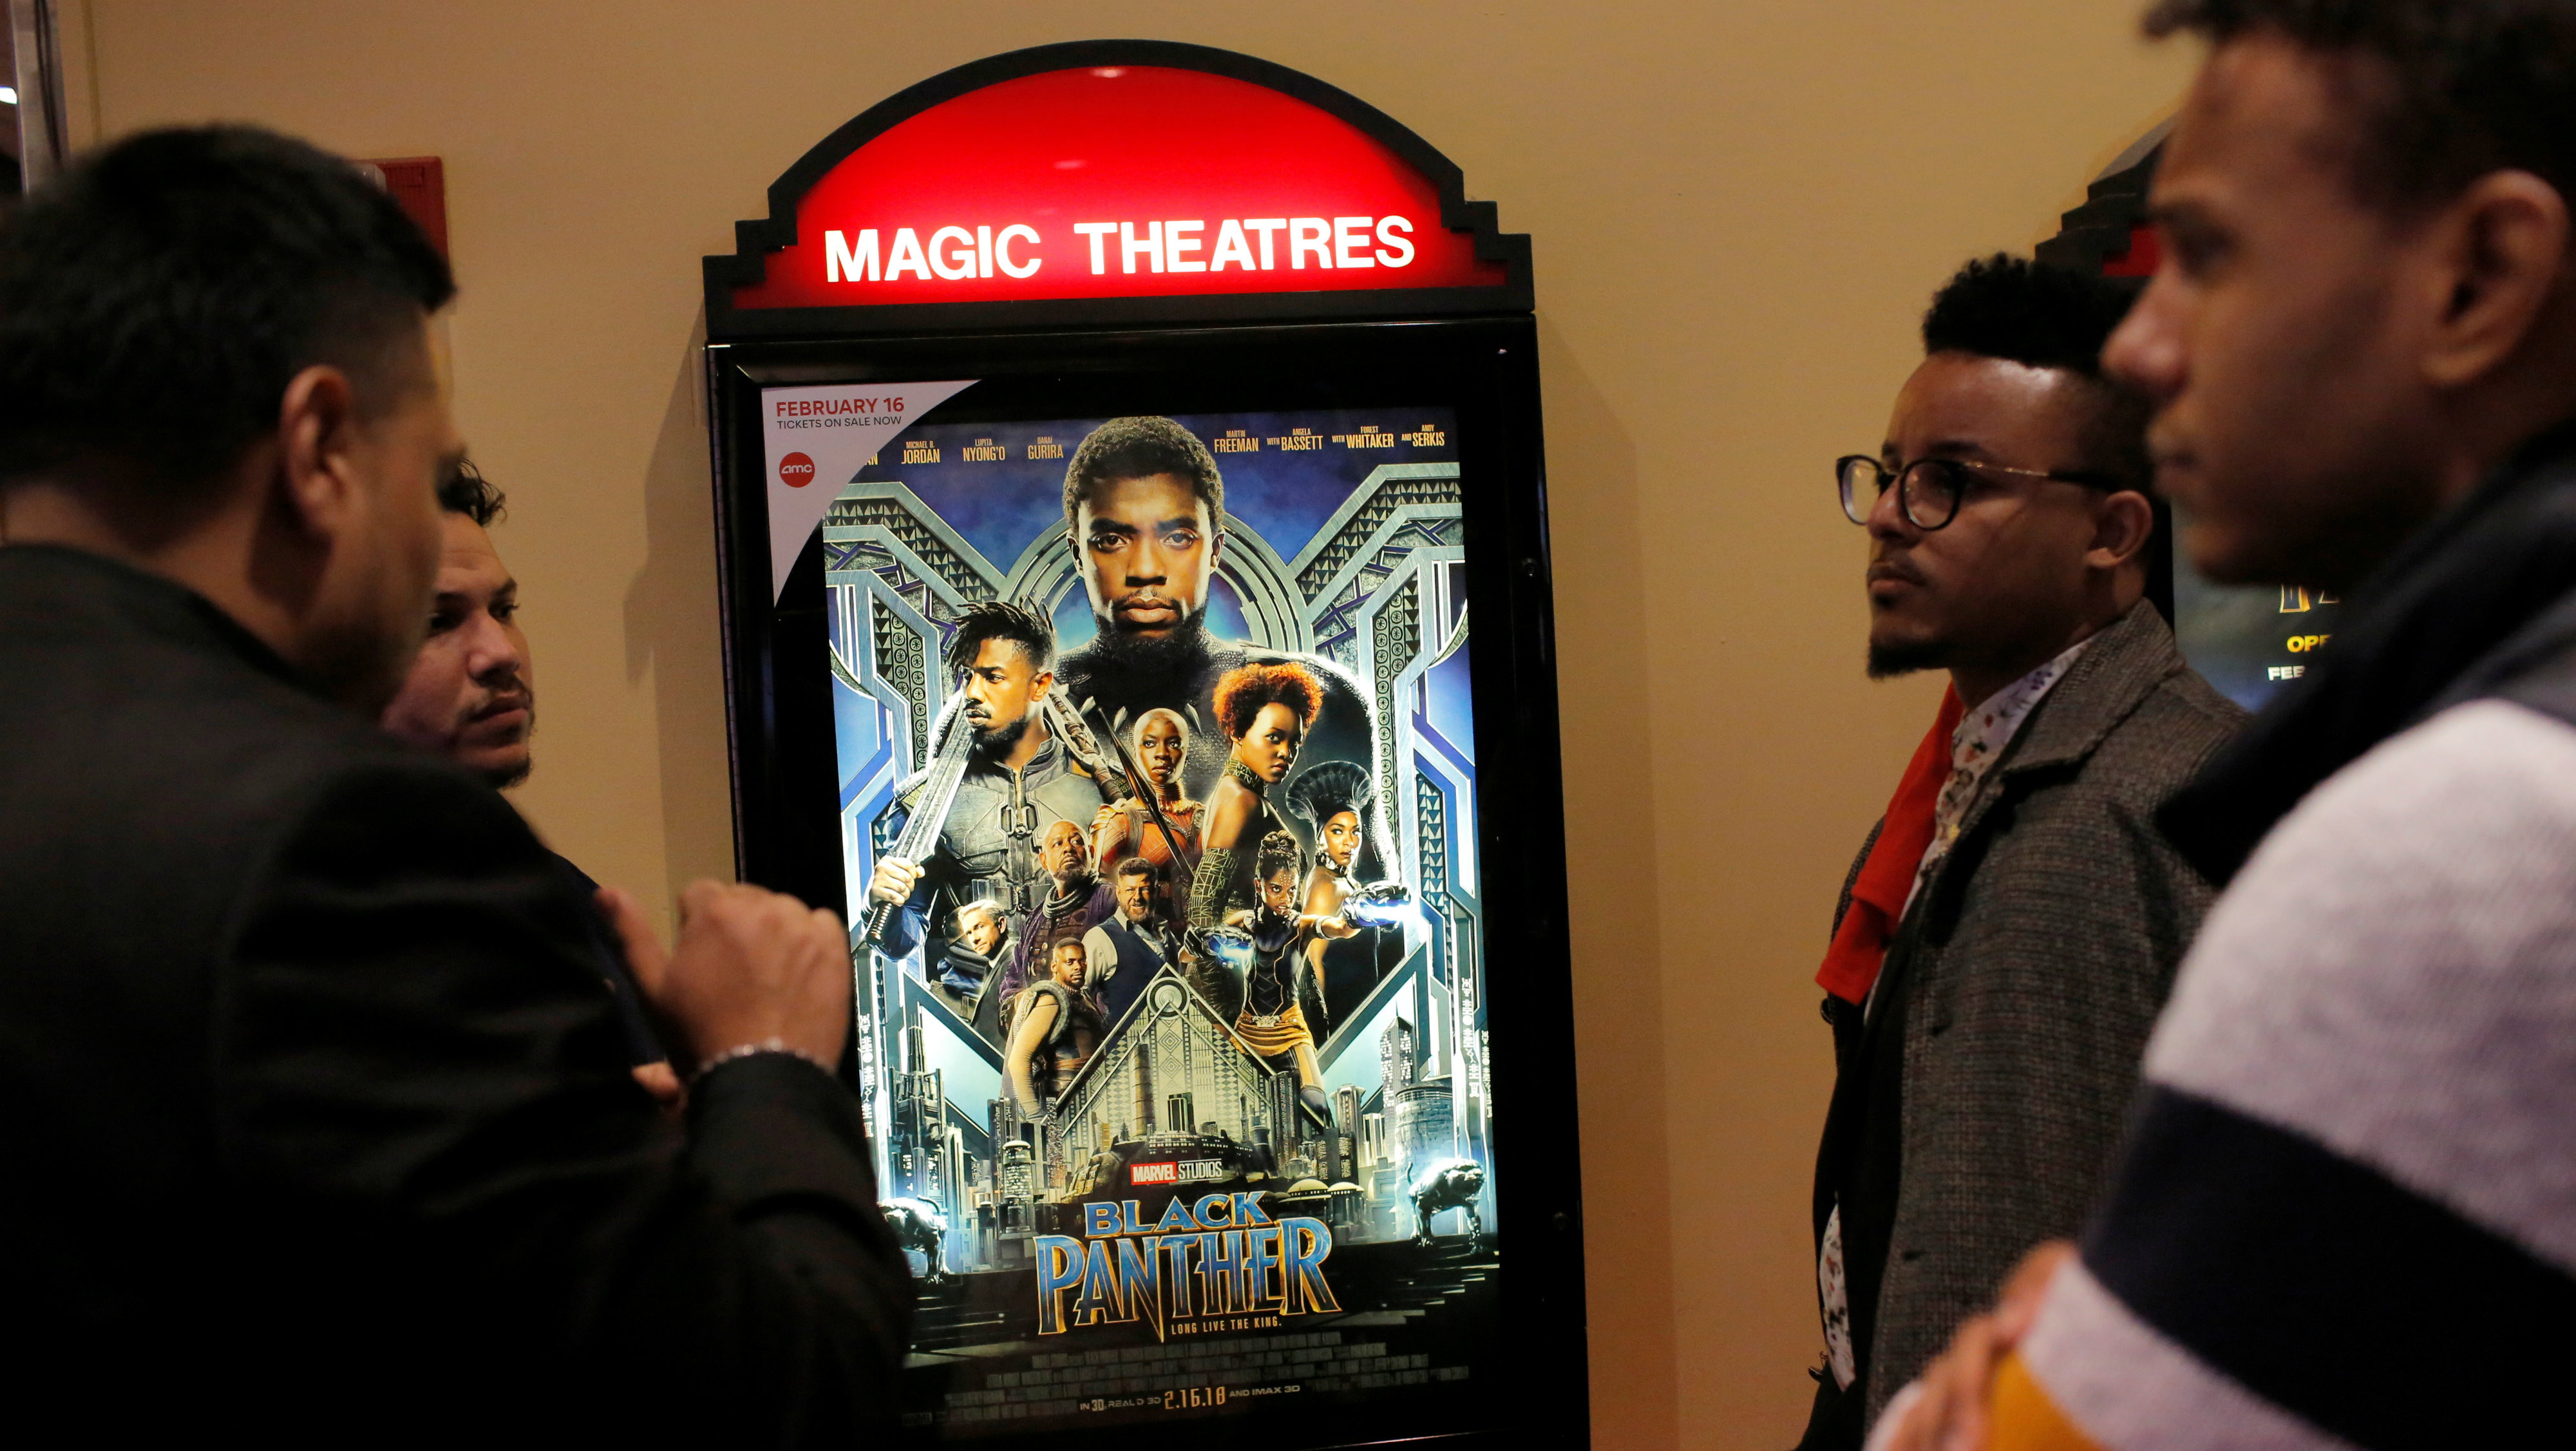 """A group of men gather in front of a poster advertising the film """"Black Panther"""" on its opening night of screenings at the AMC Magic Johnson Harlem 9 cinemas in Manhattan, New York, U.S., February 15, 2018."""